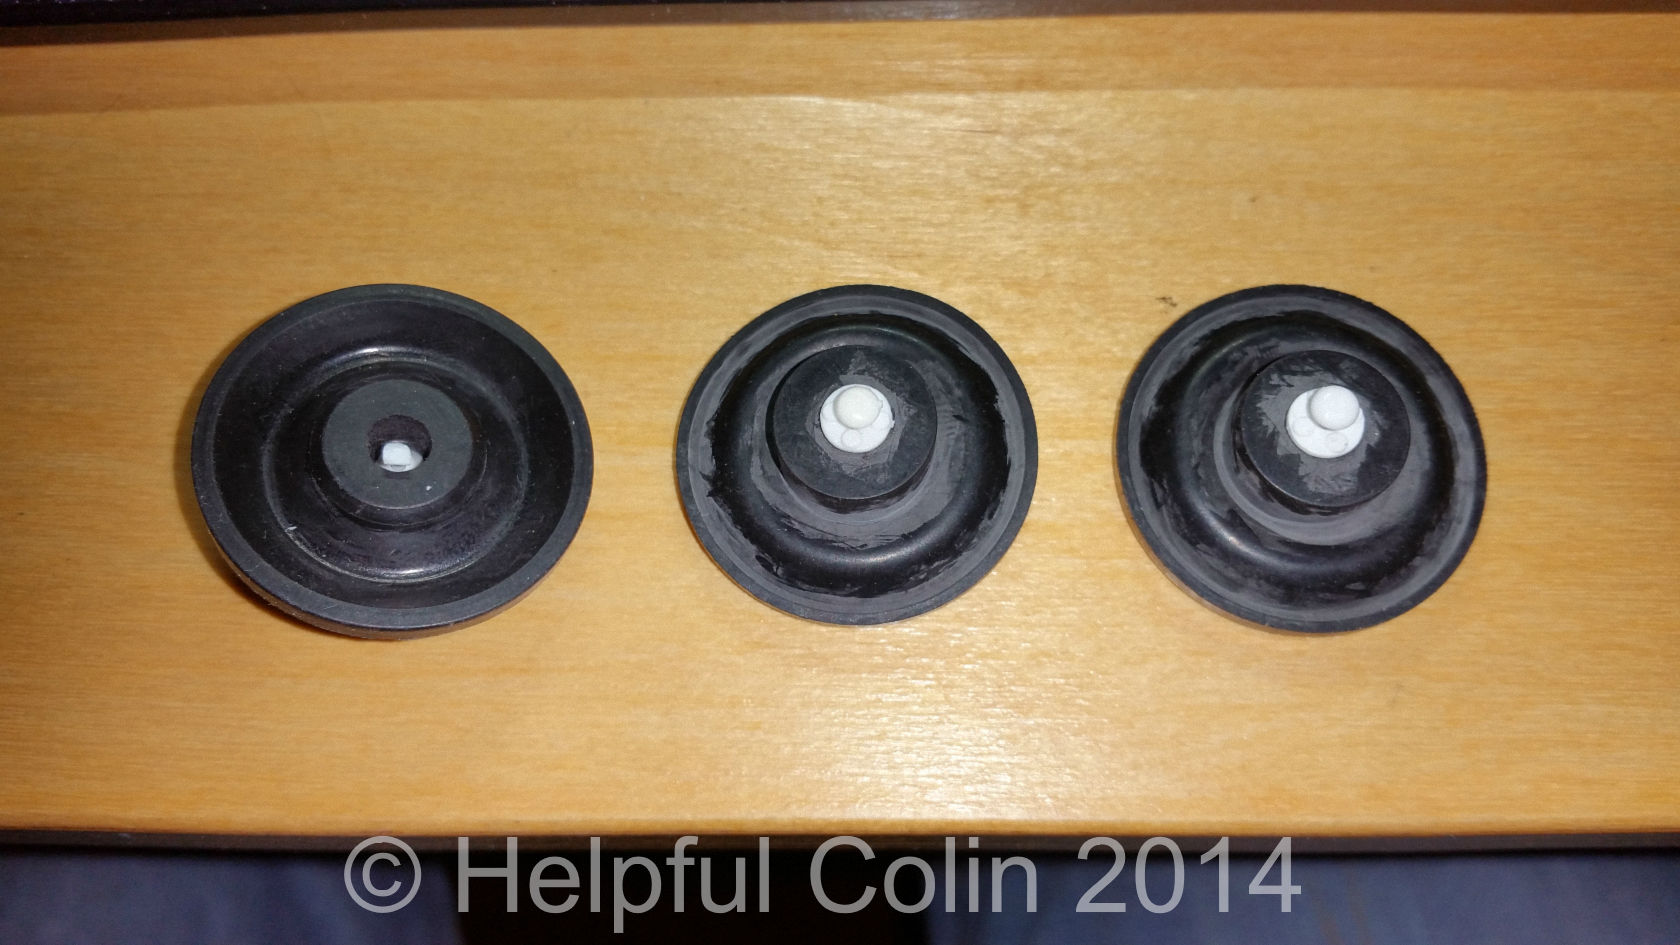 3 New Diaphragms With White Pins.